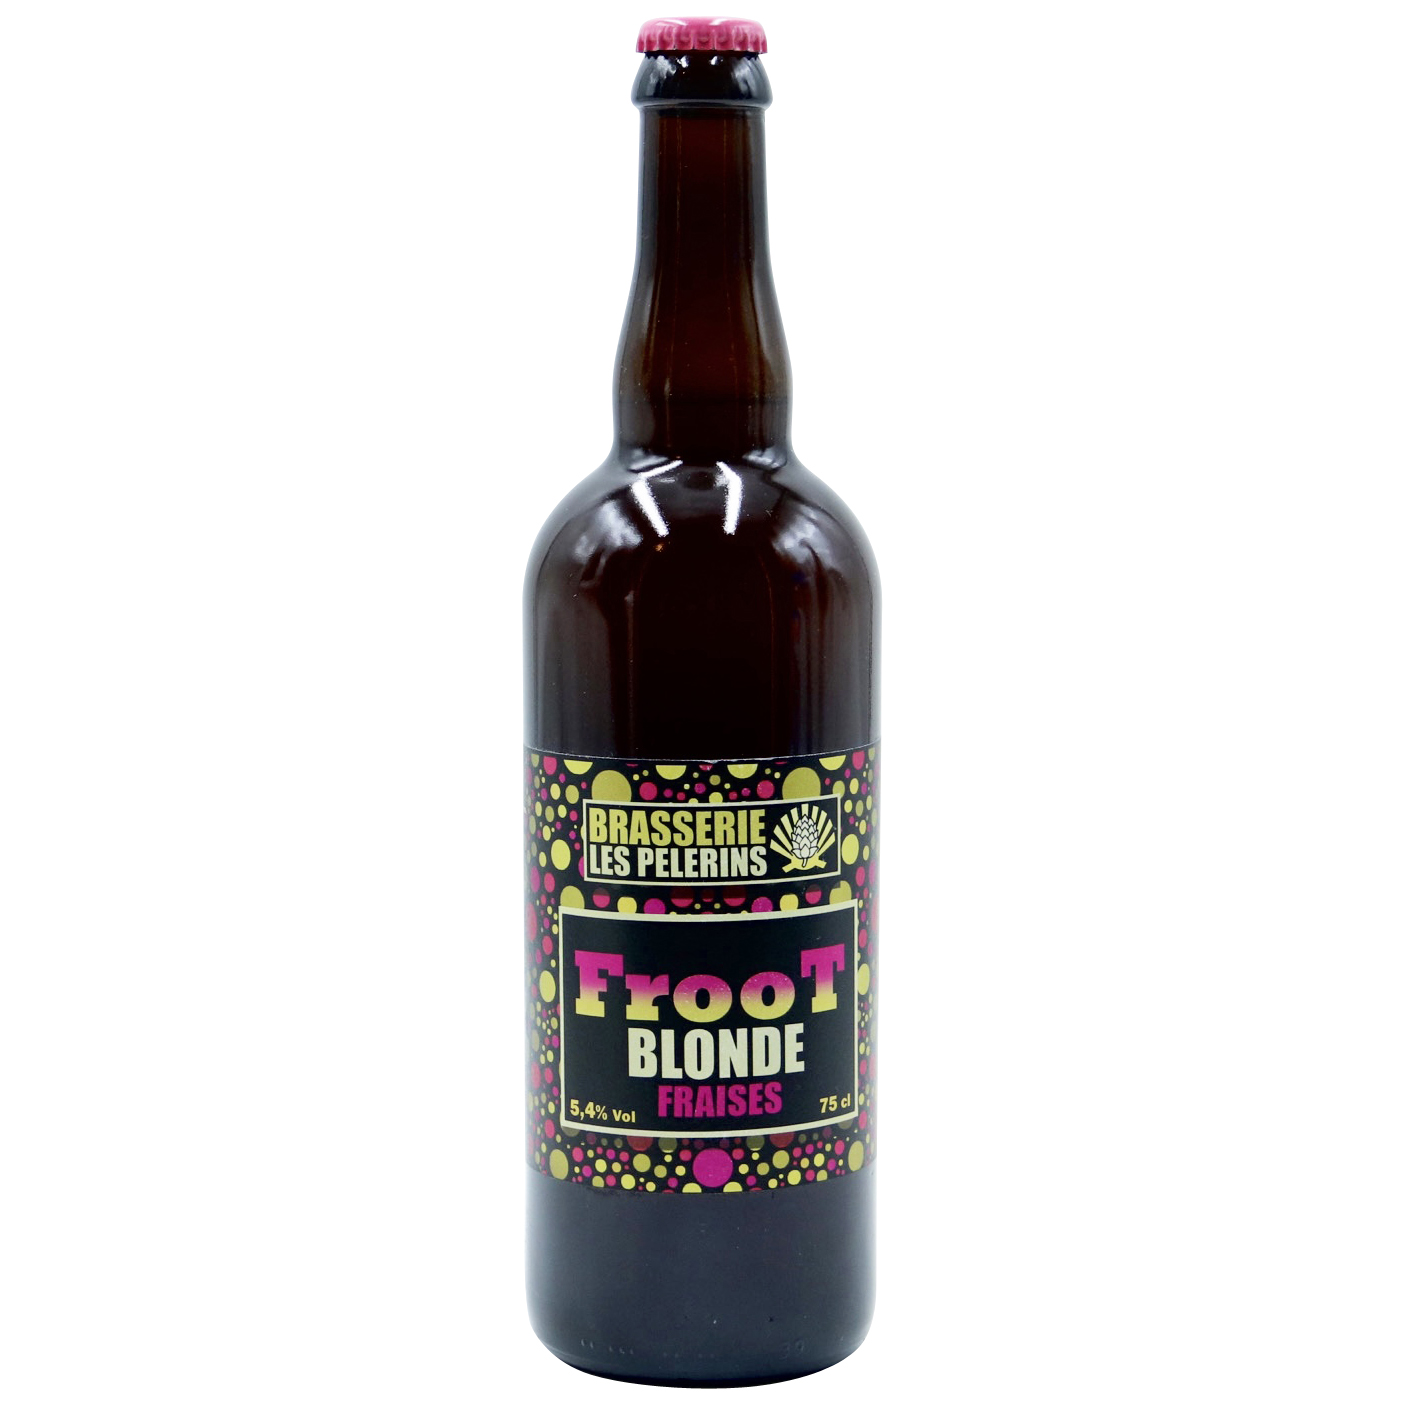 FROOT BLONDE FRAISE 75CL